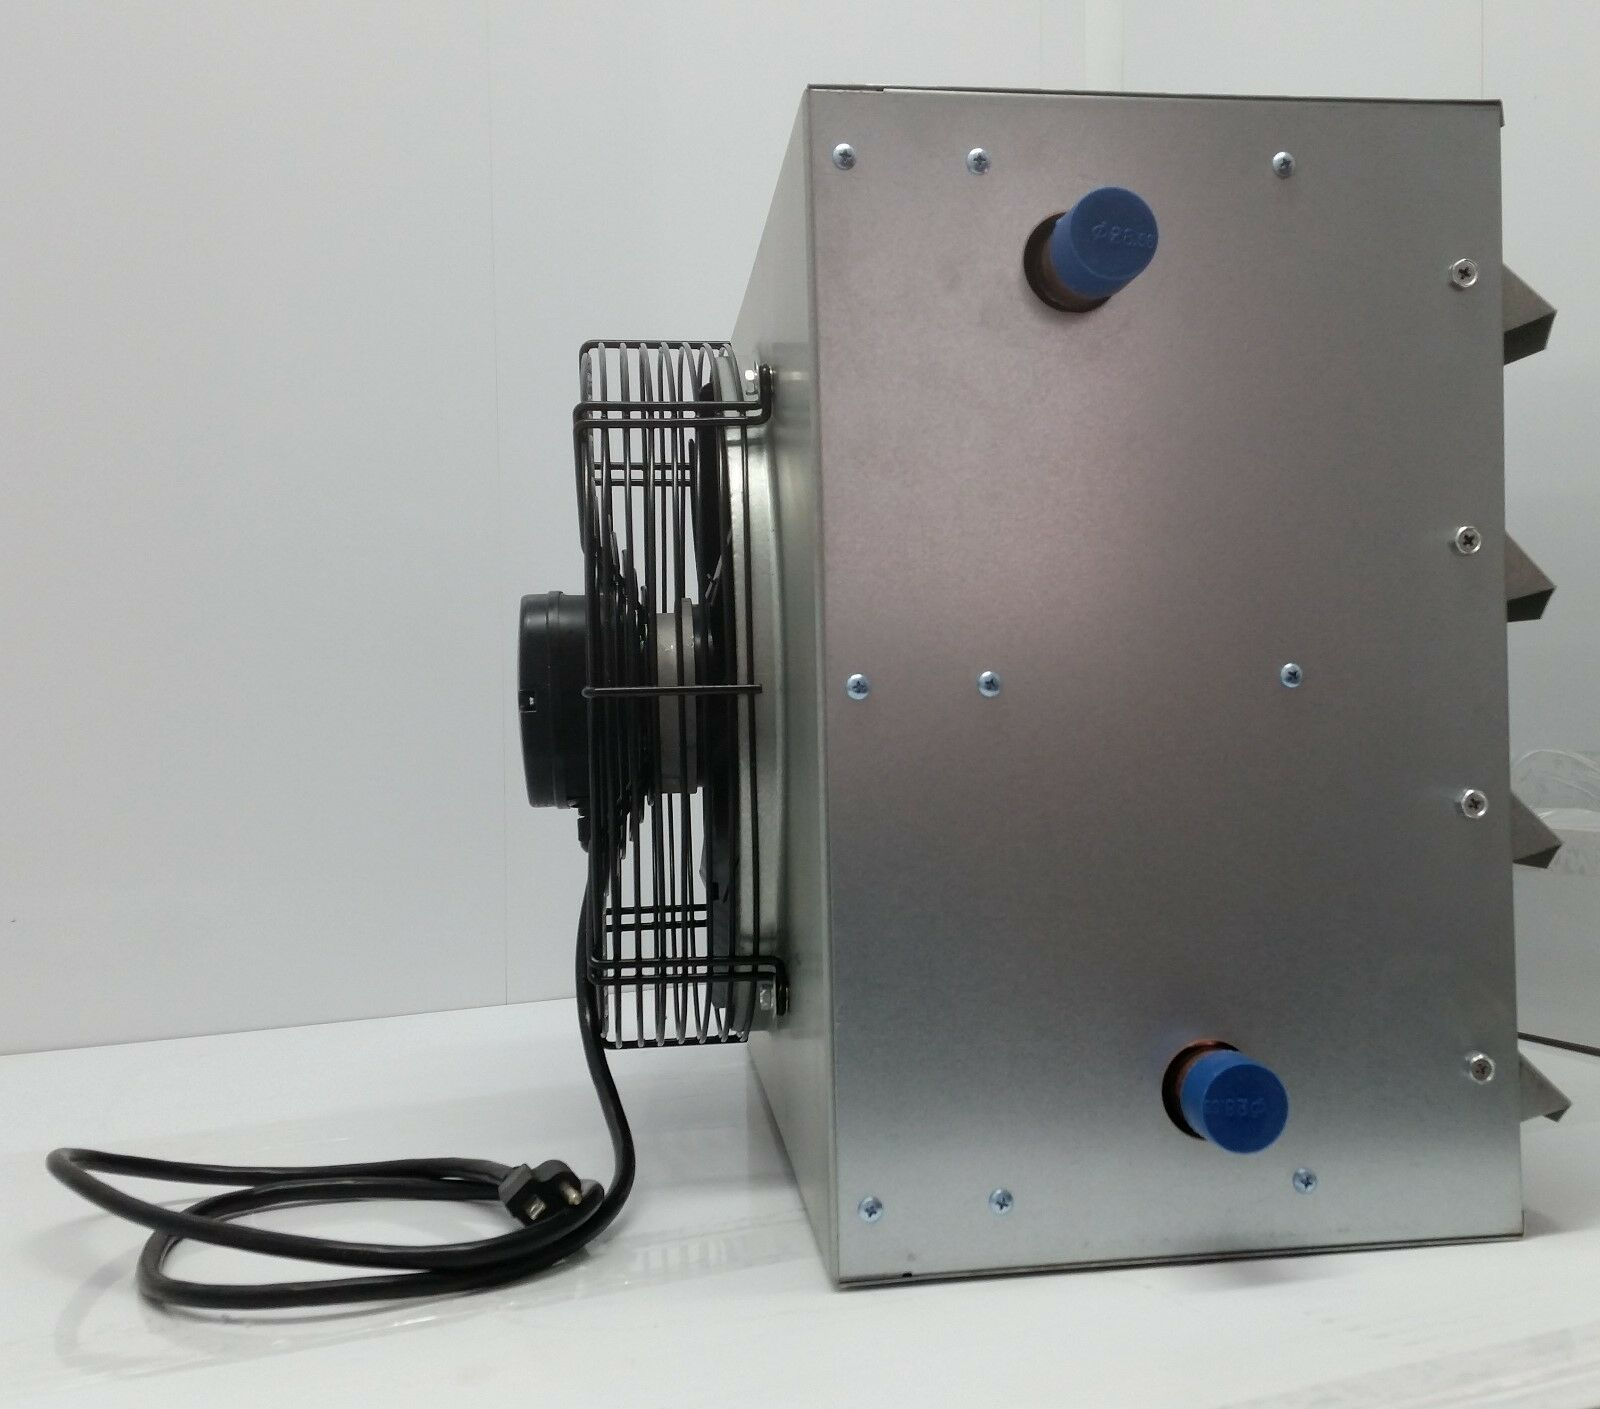 Fine Tuning Vrv Ducted Air Conditioning Systems furthermore Hotel Air Conditioner Buying Guide moreover Product Description further 10139922 together with Prolex Multi Blender 269248. on heating and cooling wall units